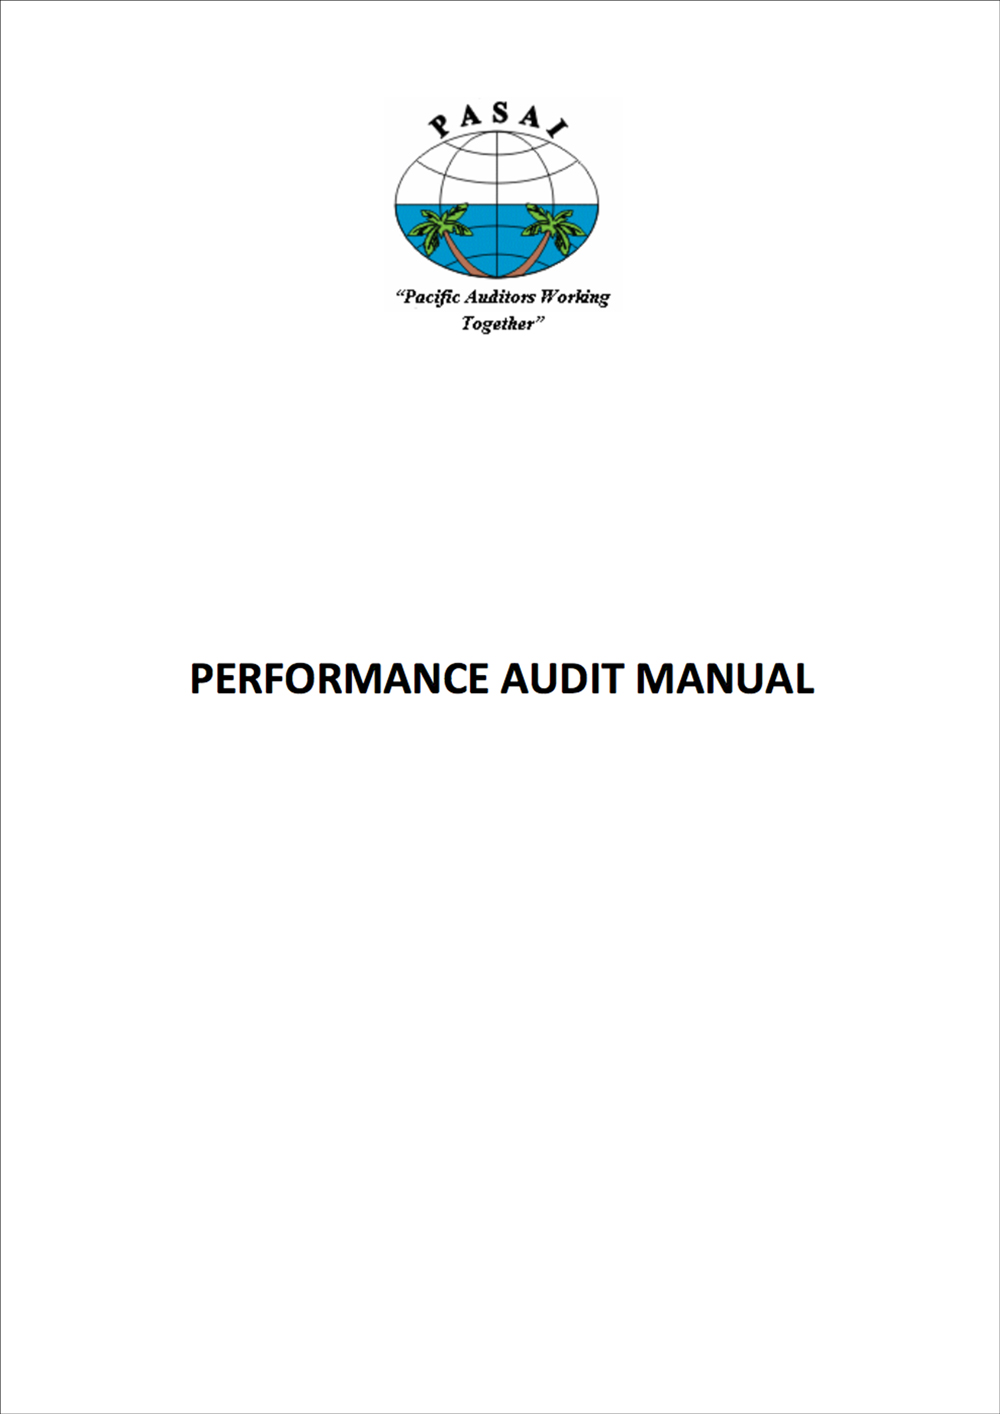 PASAI Performance Audit Manual